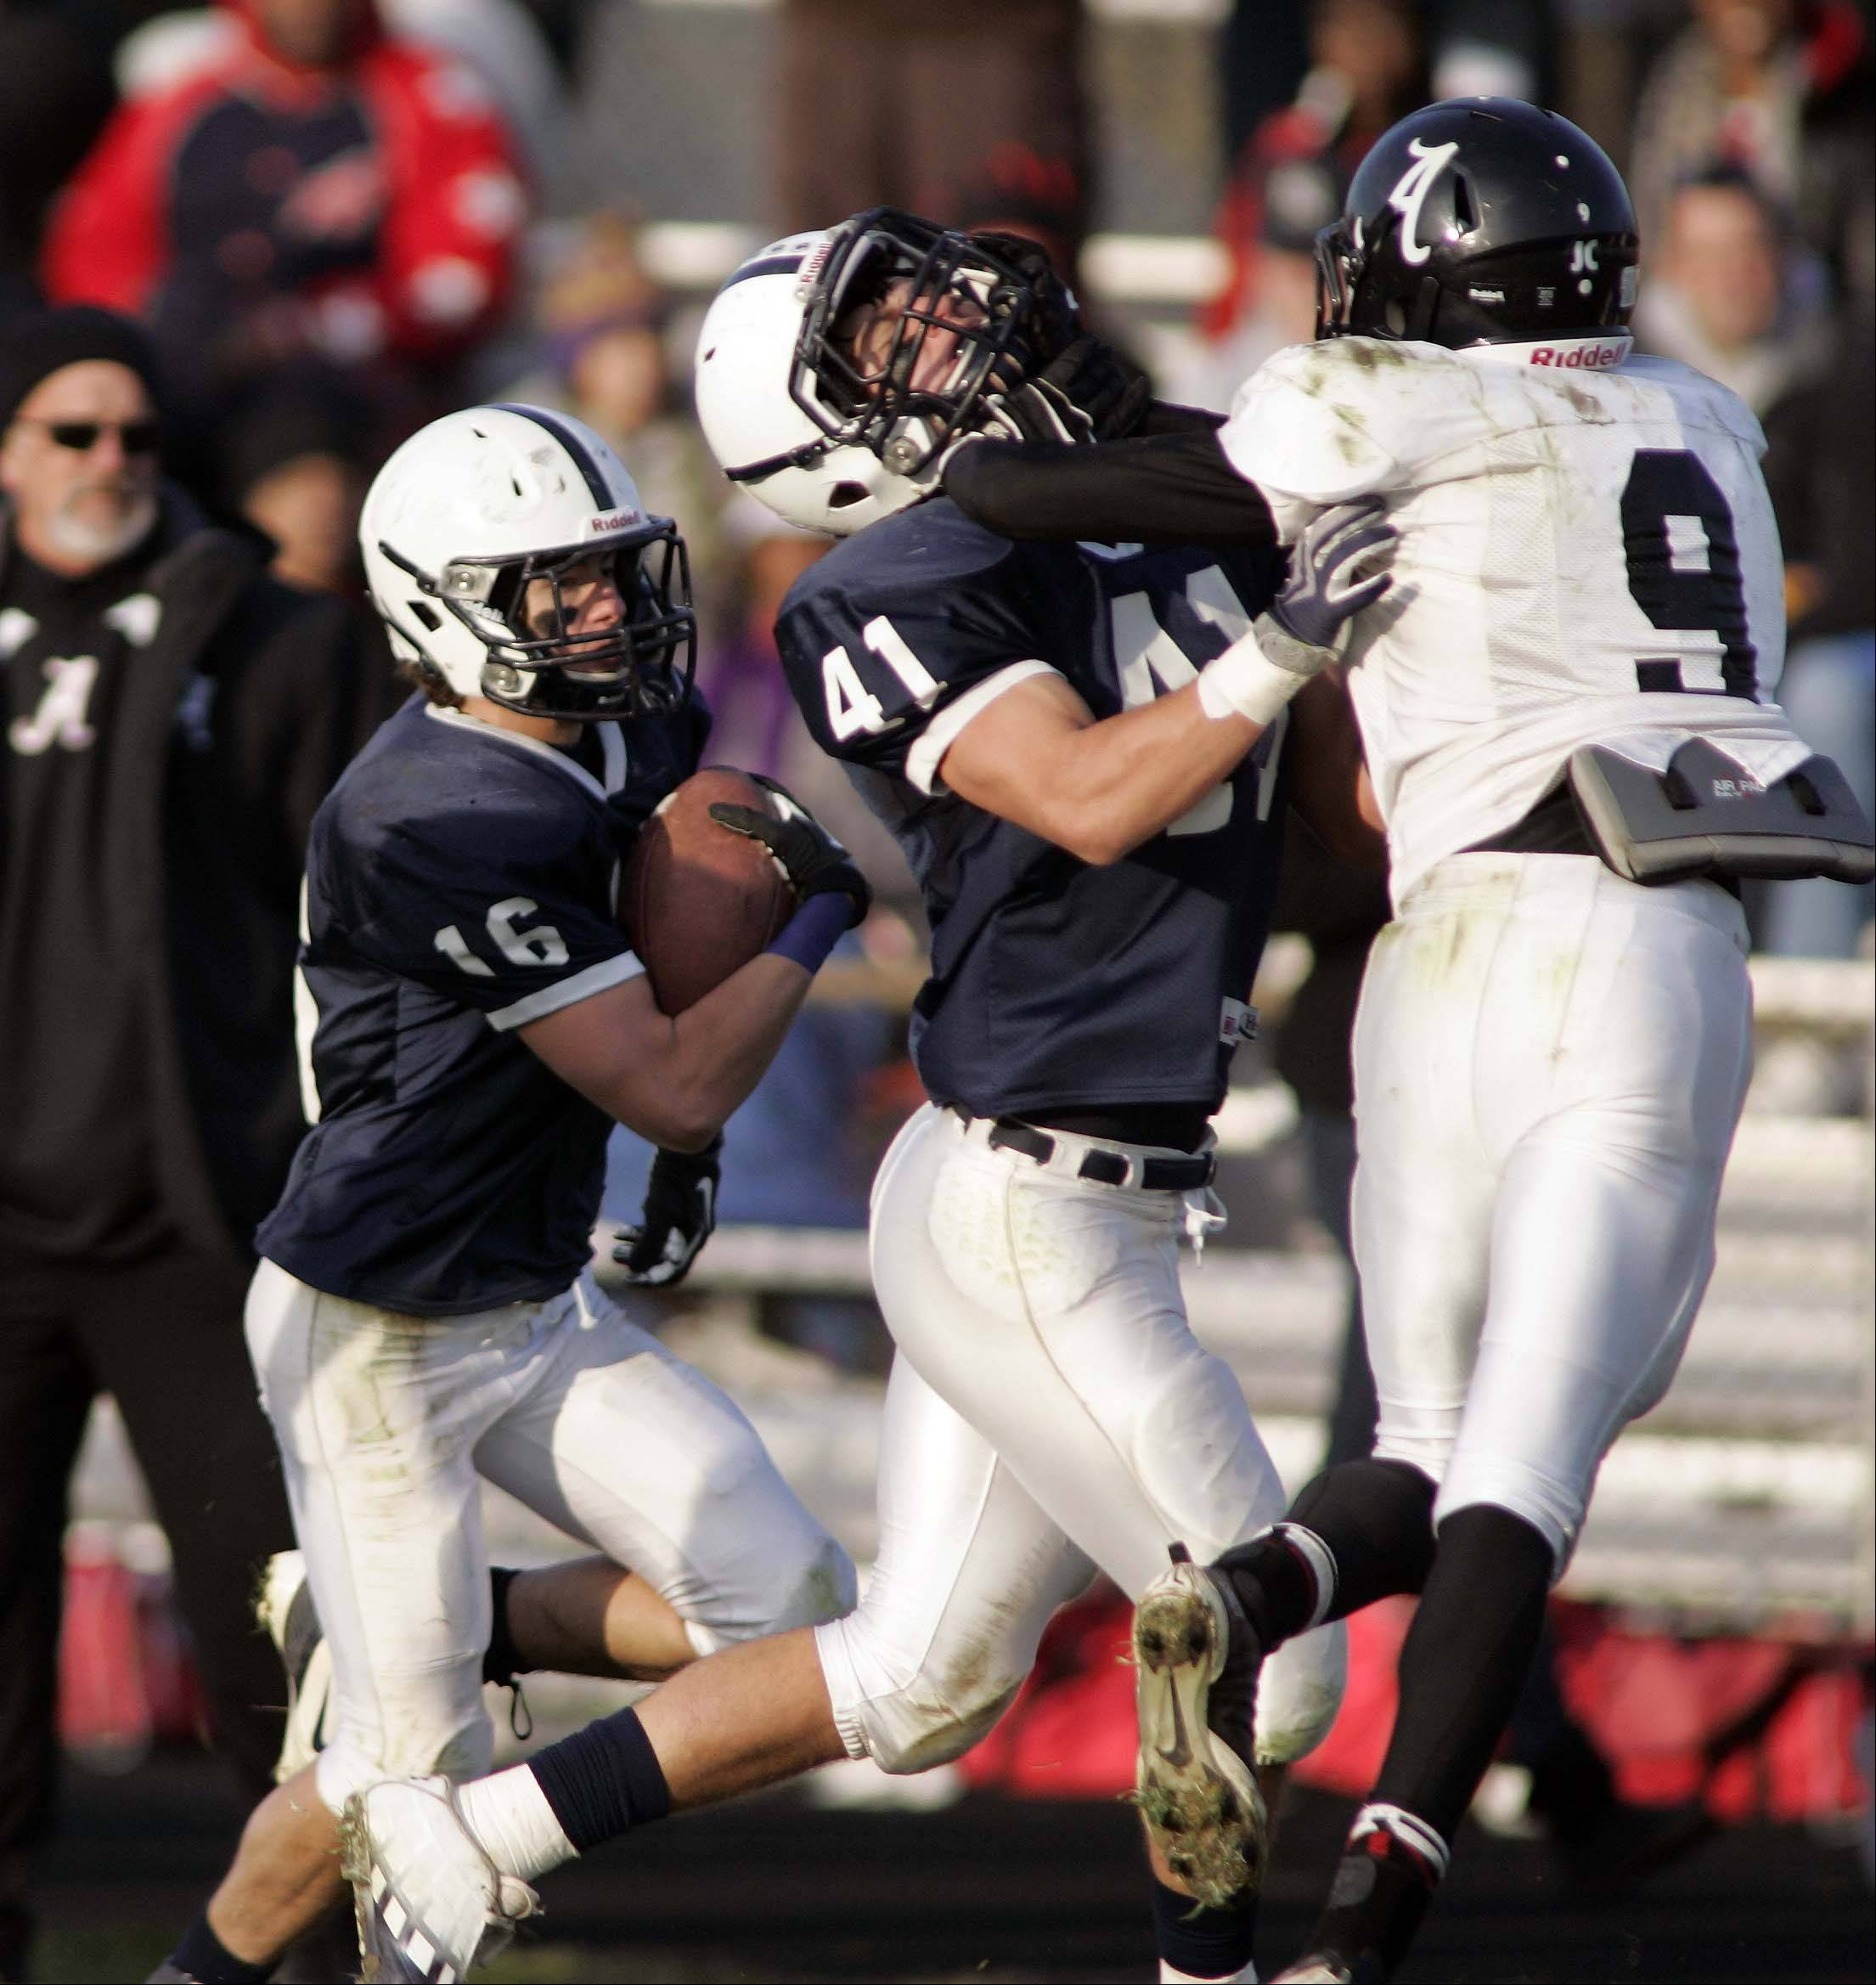 Cary-Grove's Zach Marszal (41) puts a block on Rockford Auburn's Corey Jefferson (9) to give Cary-Grove's Kaene Connington some more running room during Rockford Auburn at Cary-Grove in IHSA Class 6A playoff Football Saturday October 27, 2012.